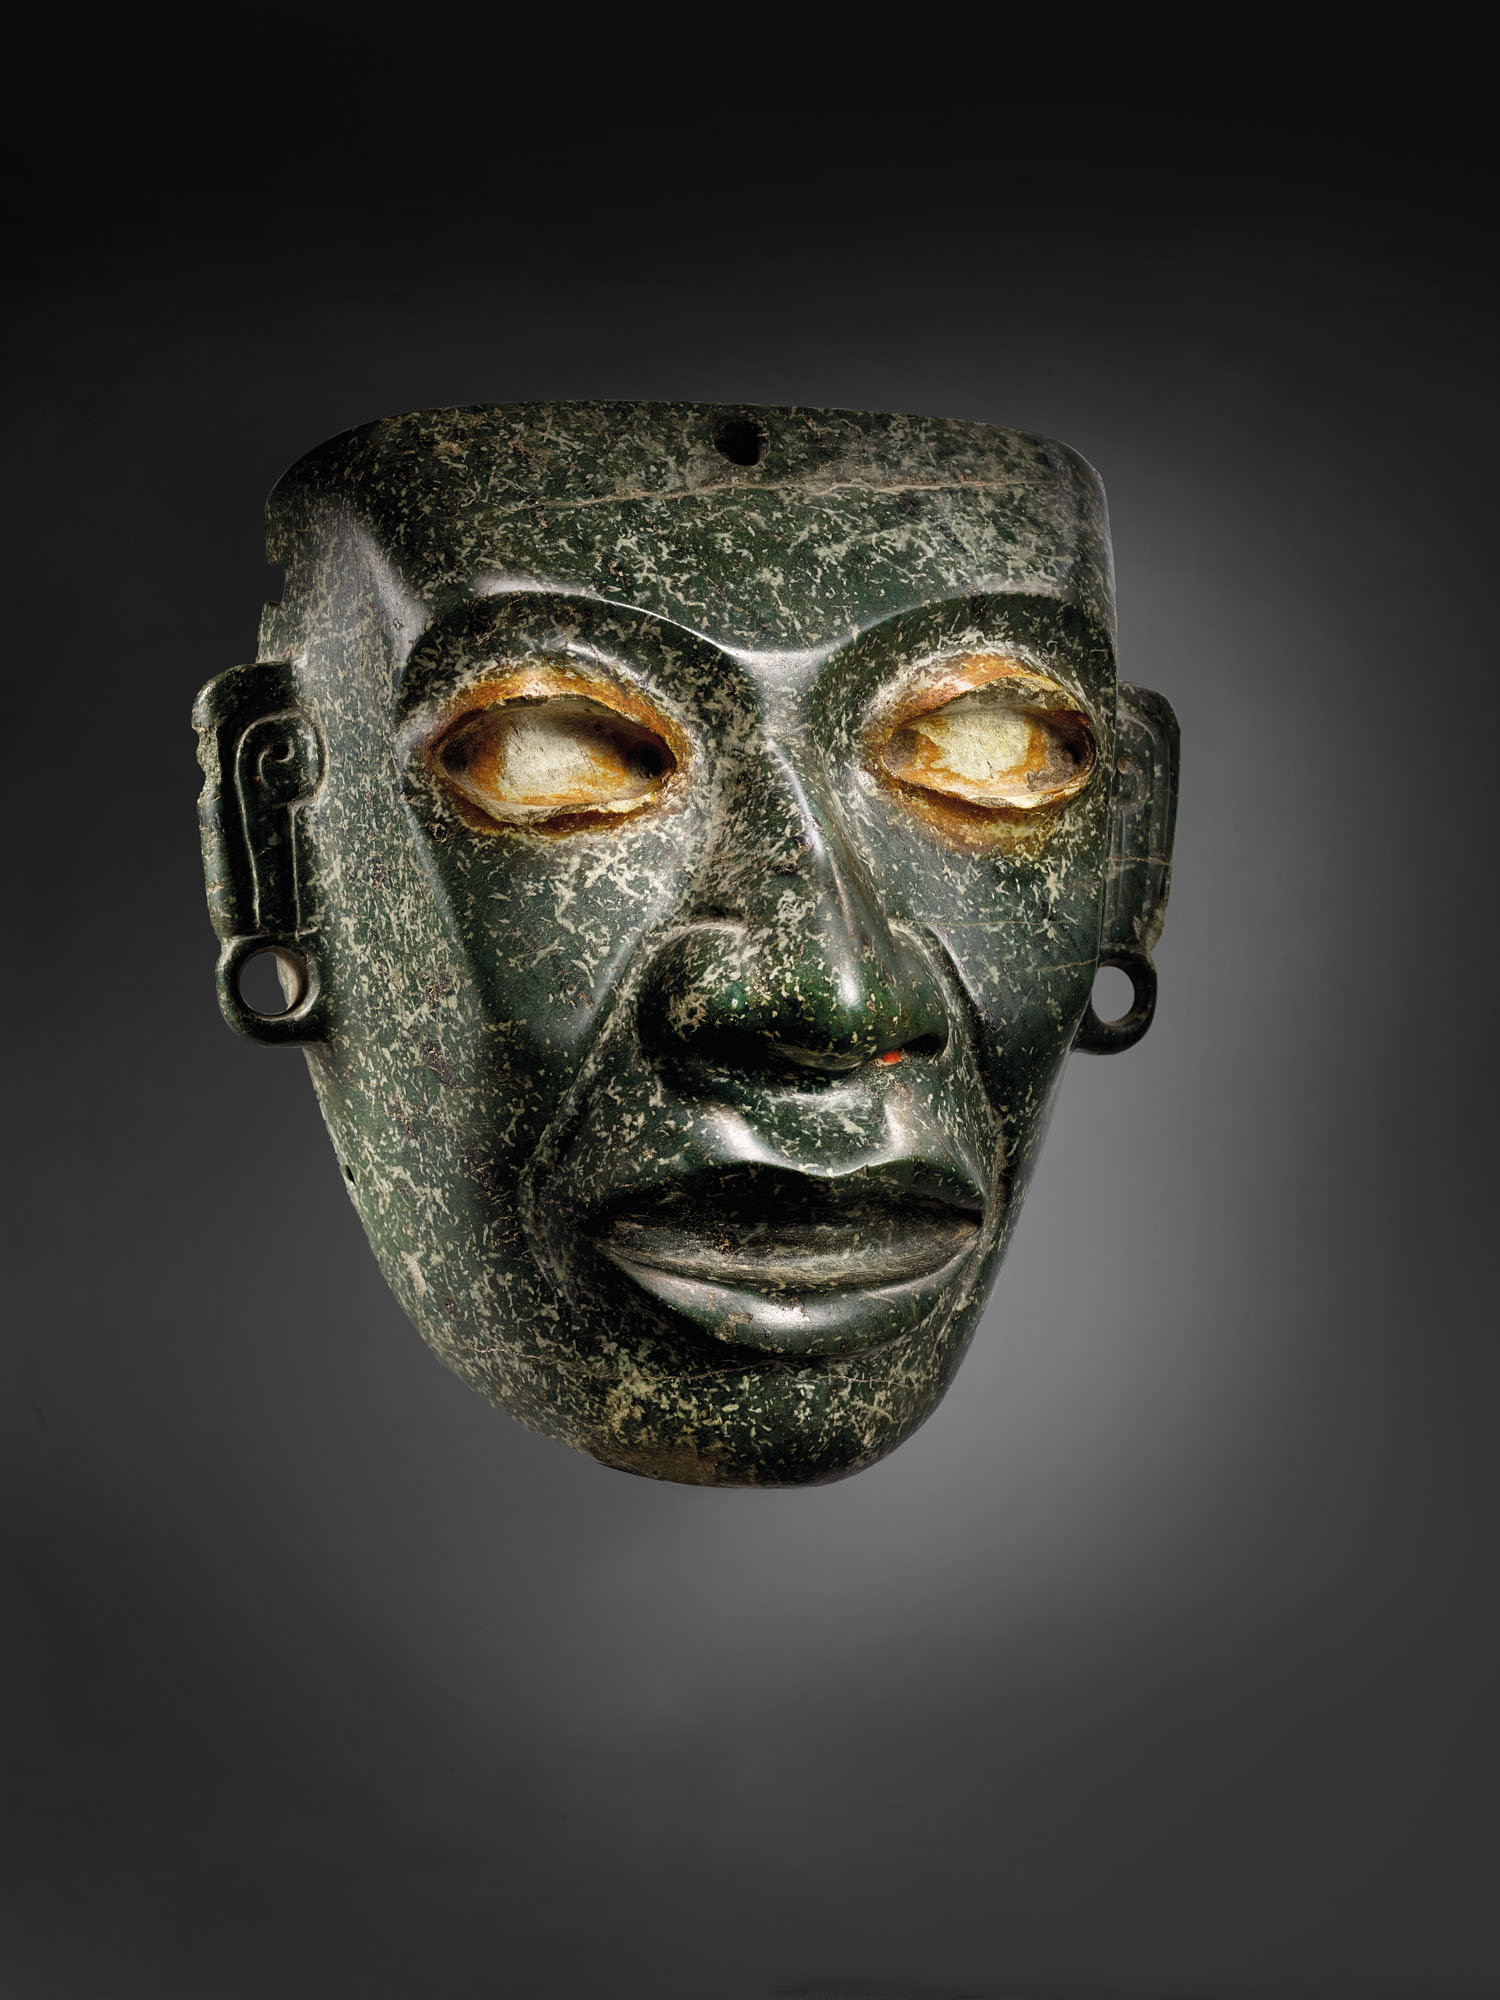 Teotihuacán serpentine mask, circa 450-650 AD. Sold for €437,500 on 9 February 2021 at Christie's in Paris